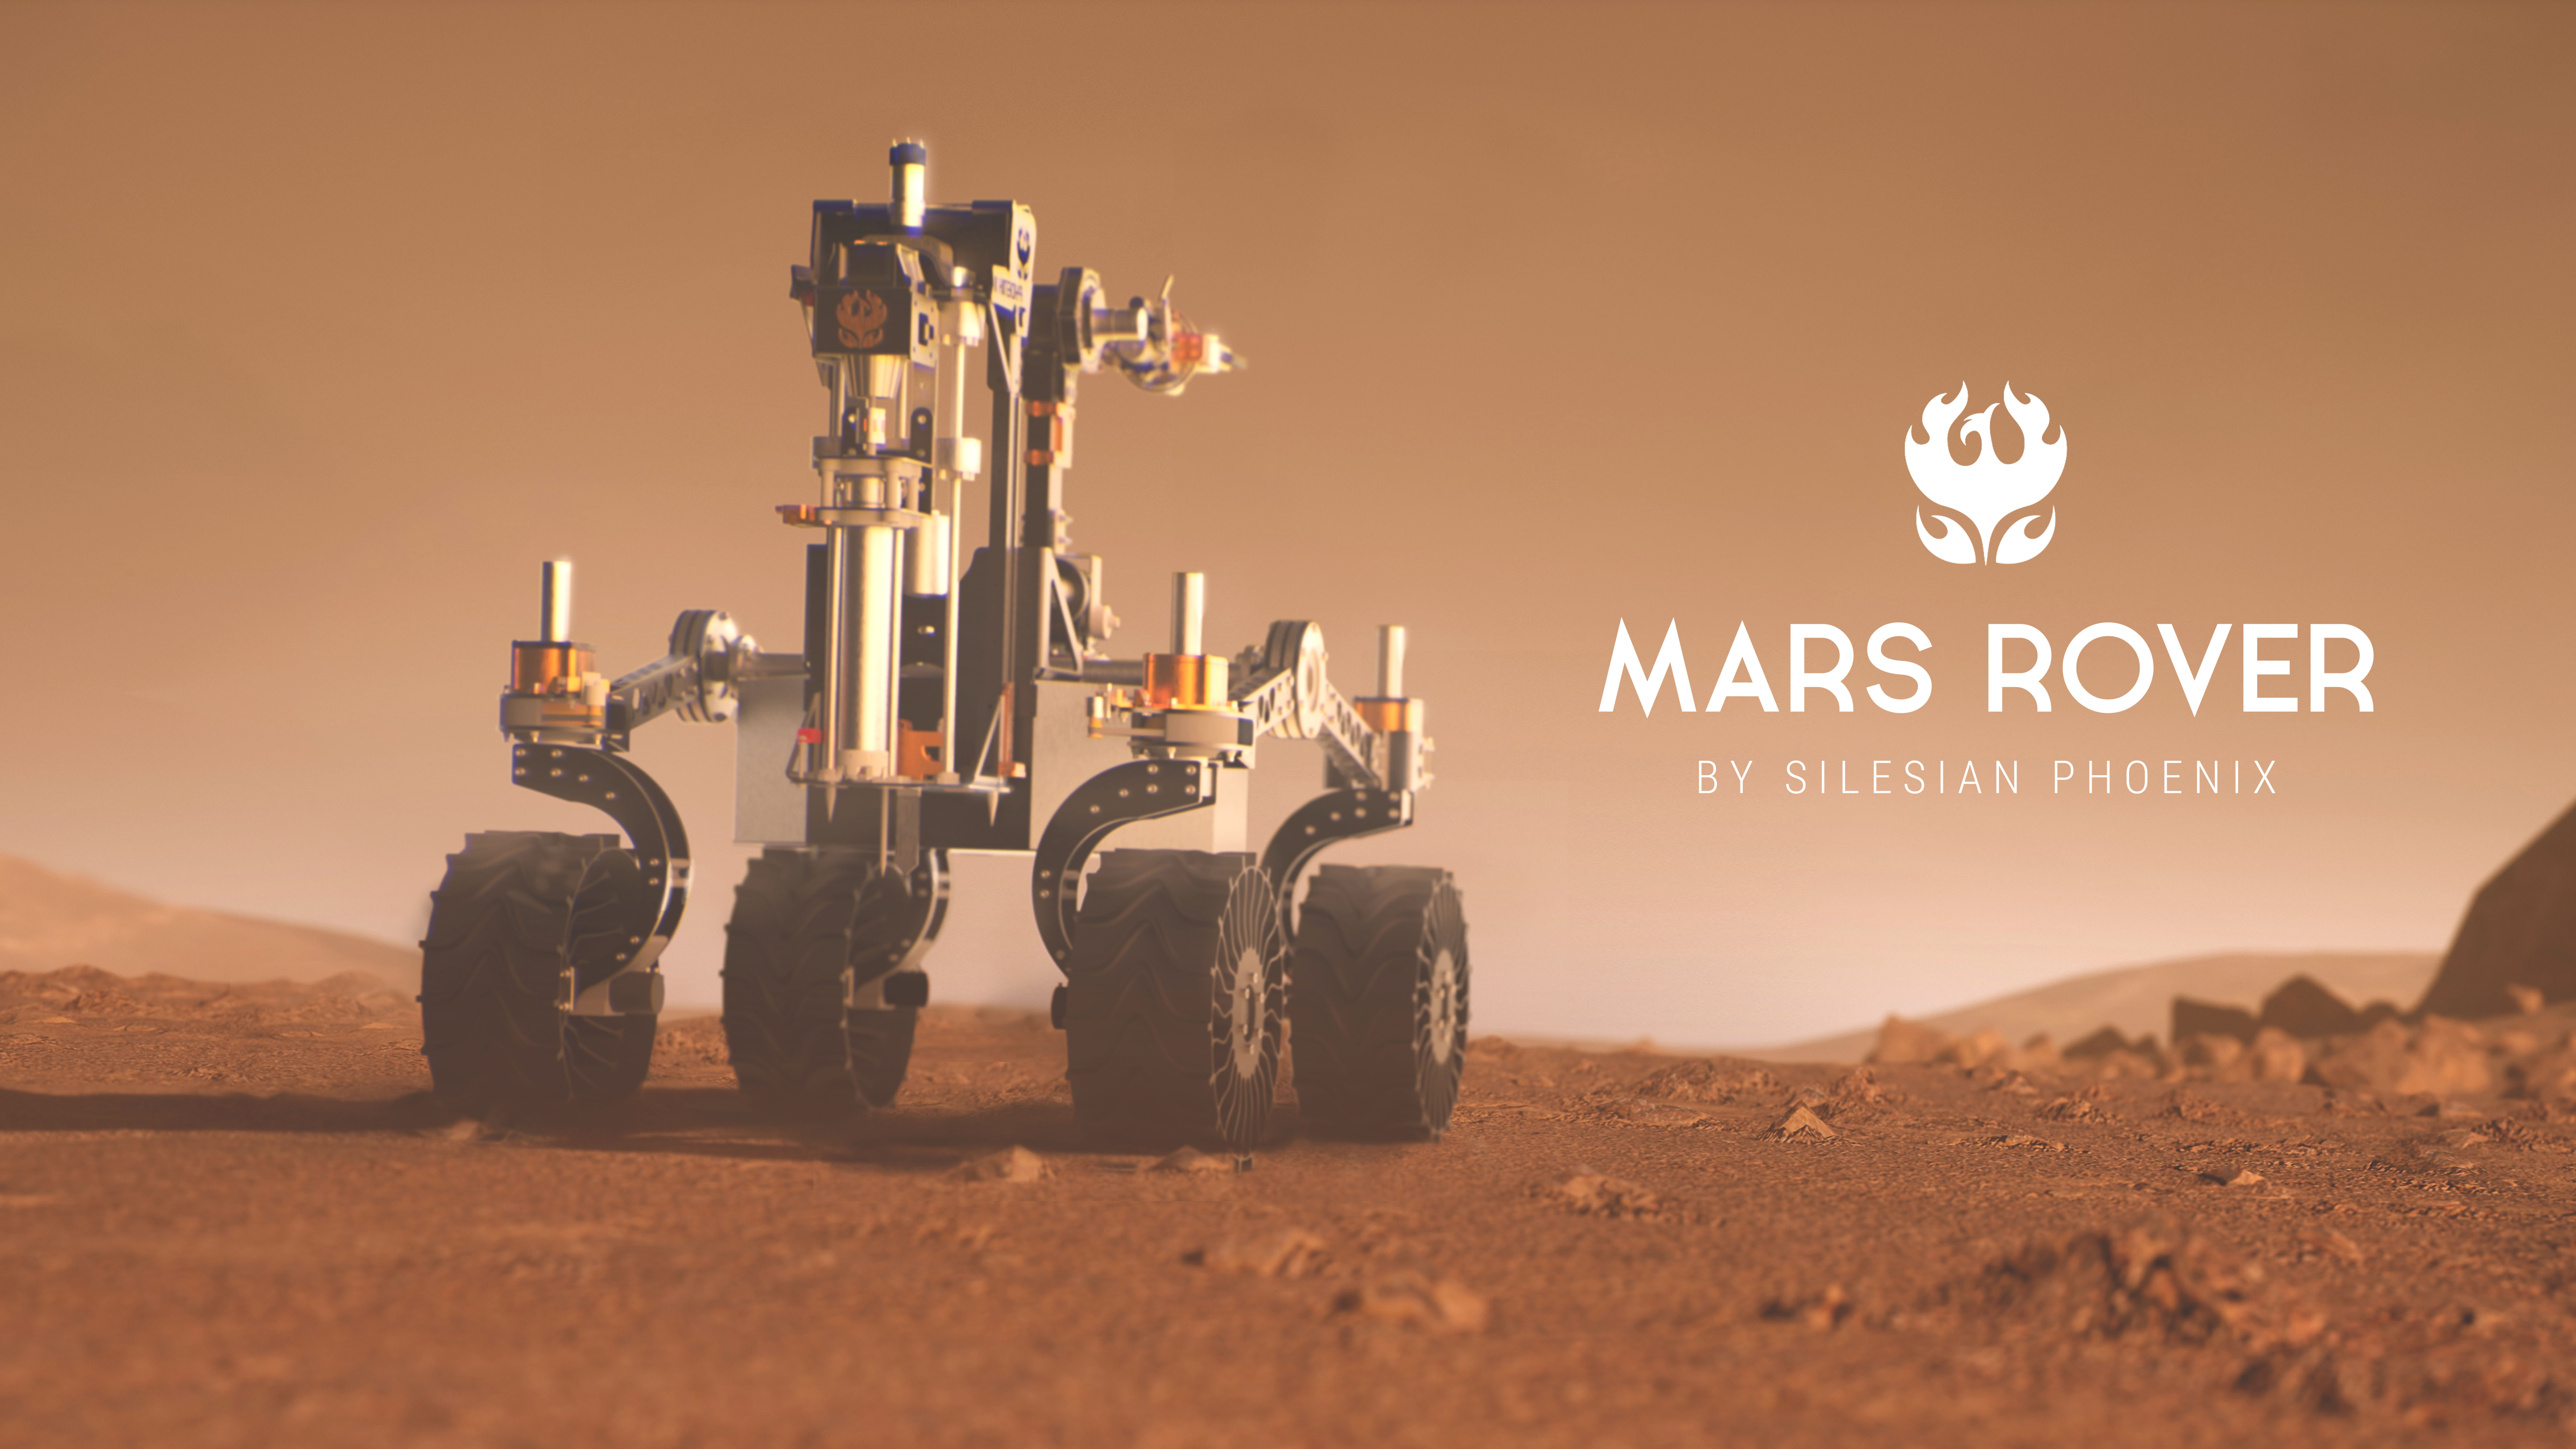 A Rover during a dust storm on the red planet. Curiosity Rover on Mars.